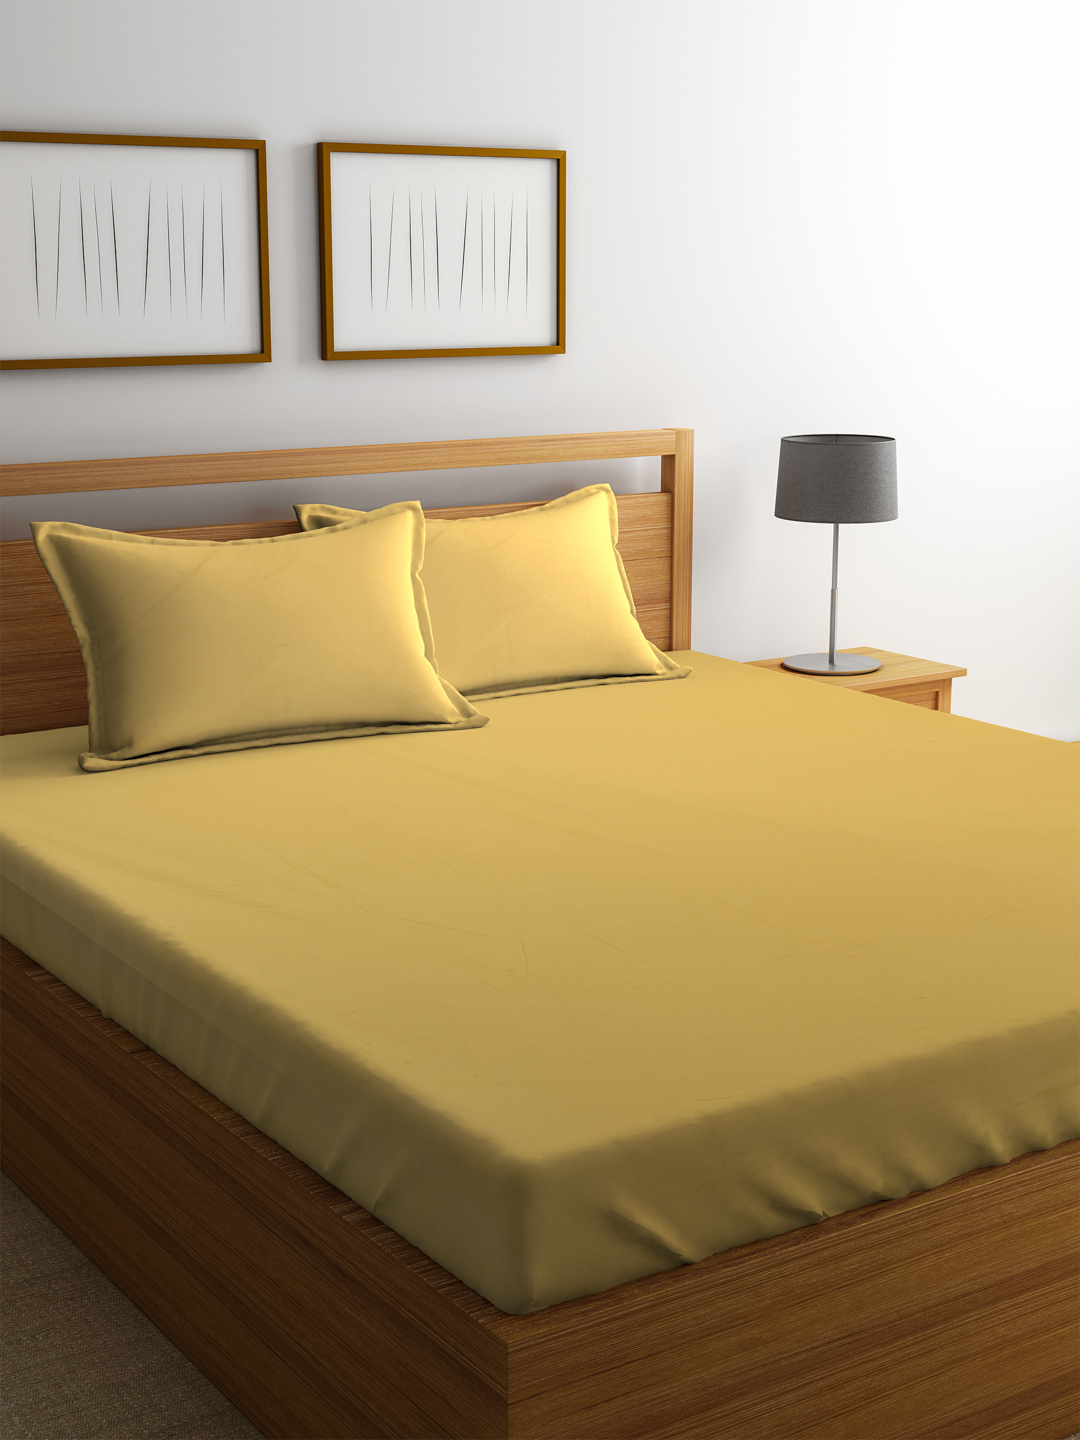 Portico Percale Cotton Double Bed Sheets in Gold Colour by Portico